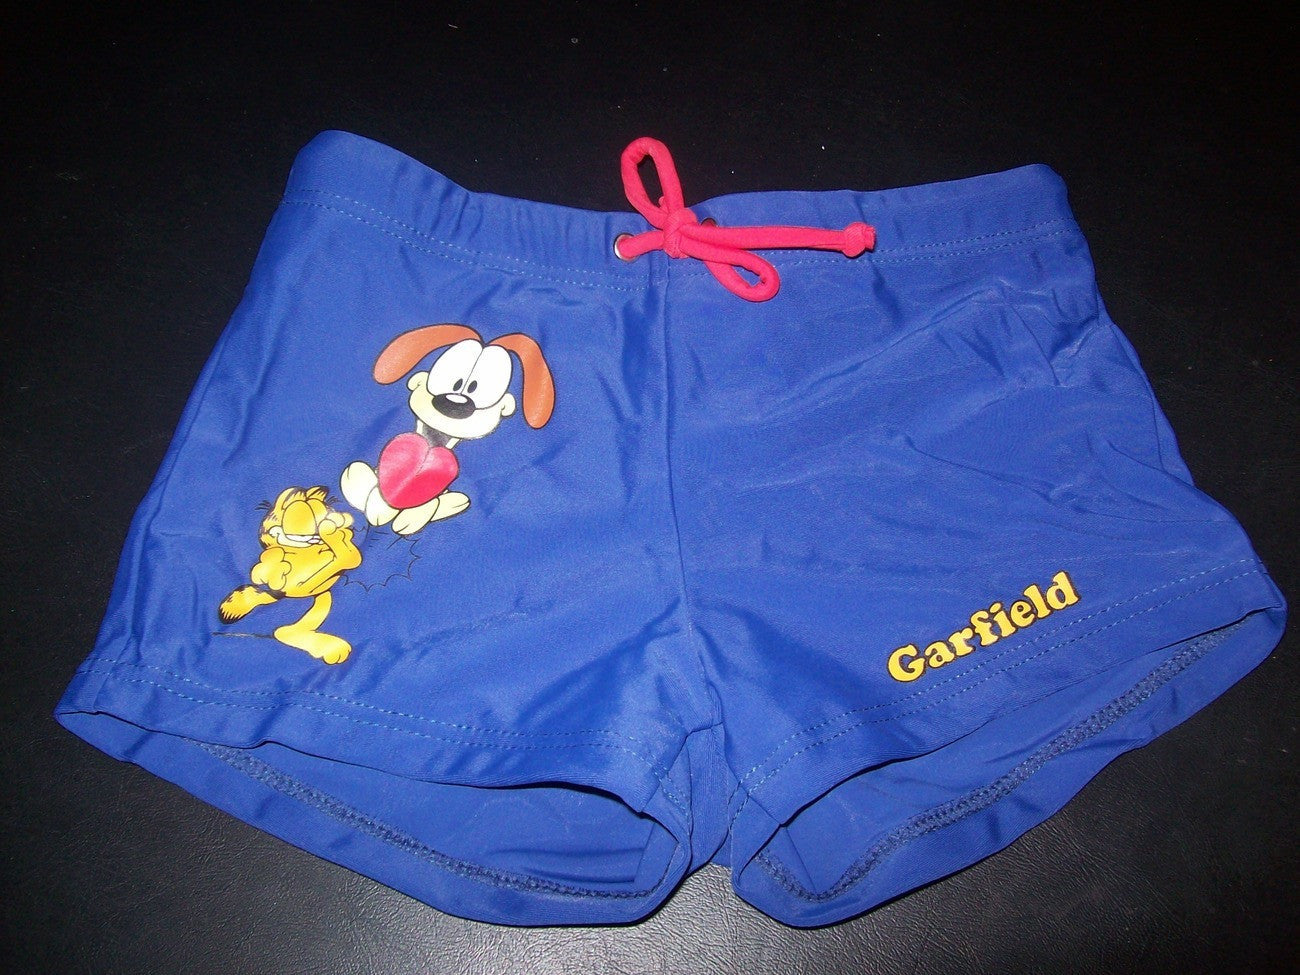 Garfield Toddlers Blue Swimming Trunks - Simply Garfield